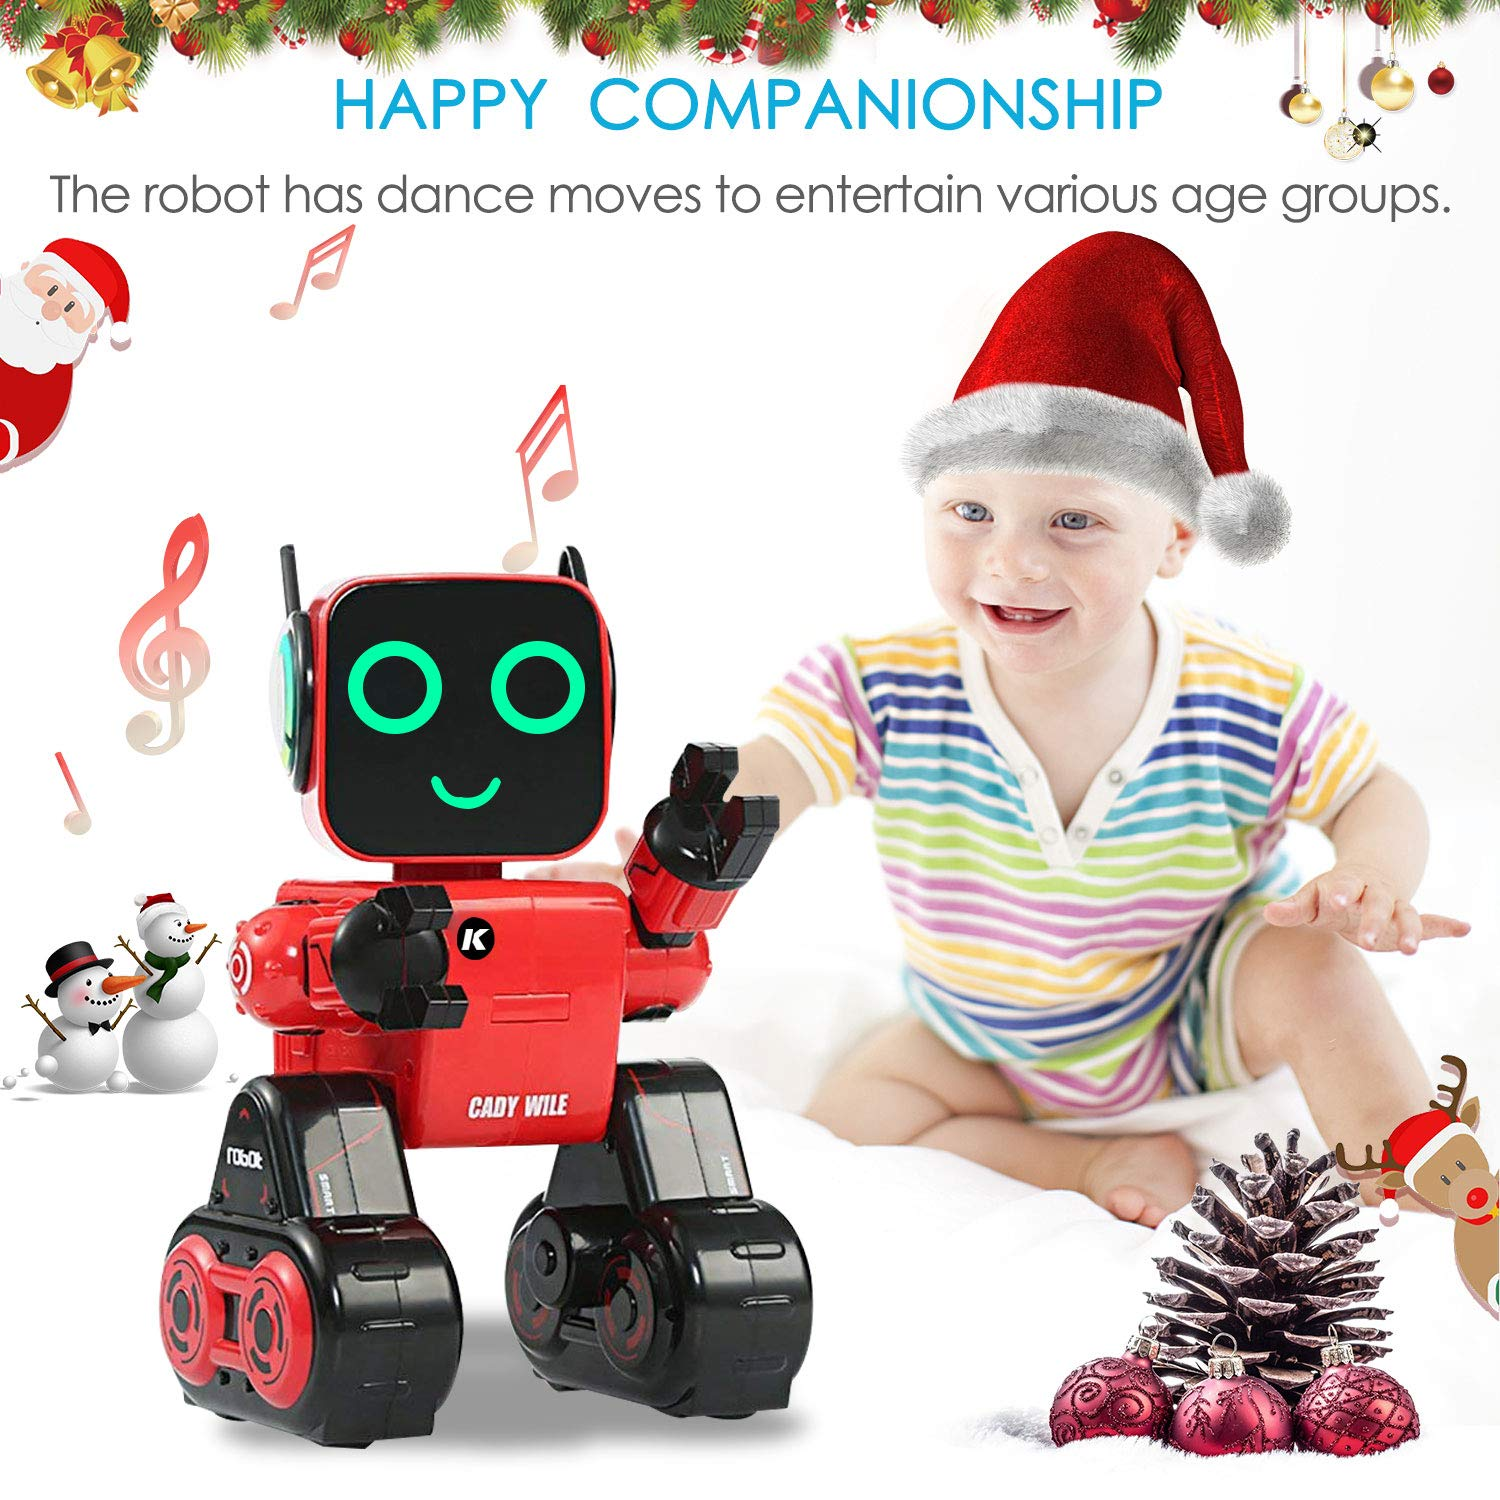 IHBUDS Programmable Remote Control Toy Robot for Kids,Touch & Sound Control, Speaks, Dance Moves, Plays Music. Built-in Coin Bank.Rechargeable RC Robot Kit for Boys, Girls All Ages-Red/Black by IHBUDS (Image #5)